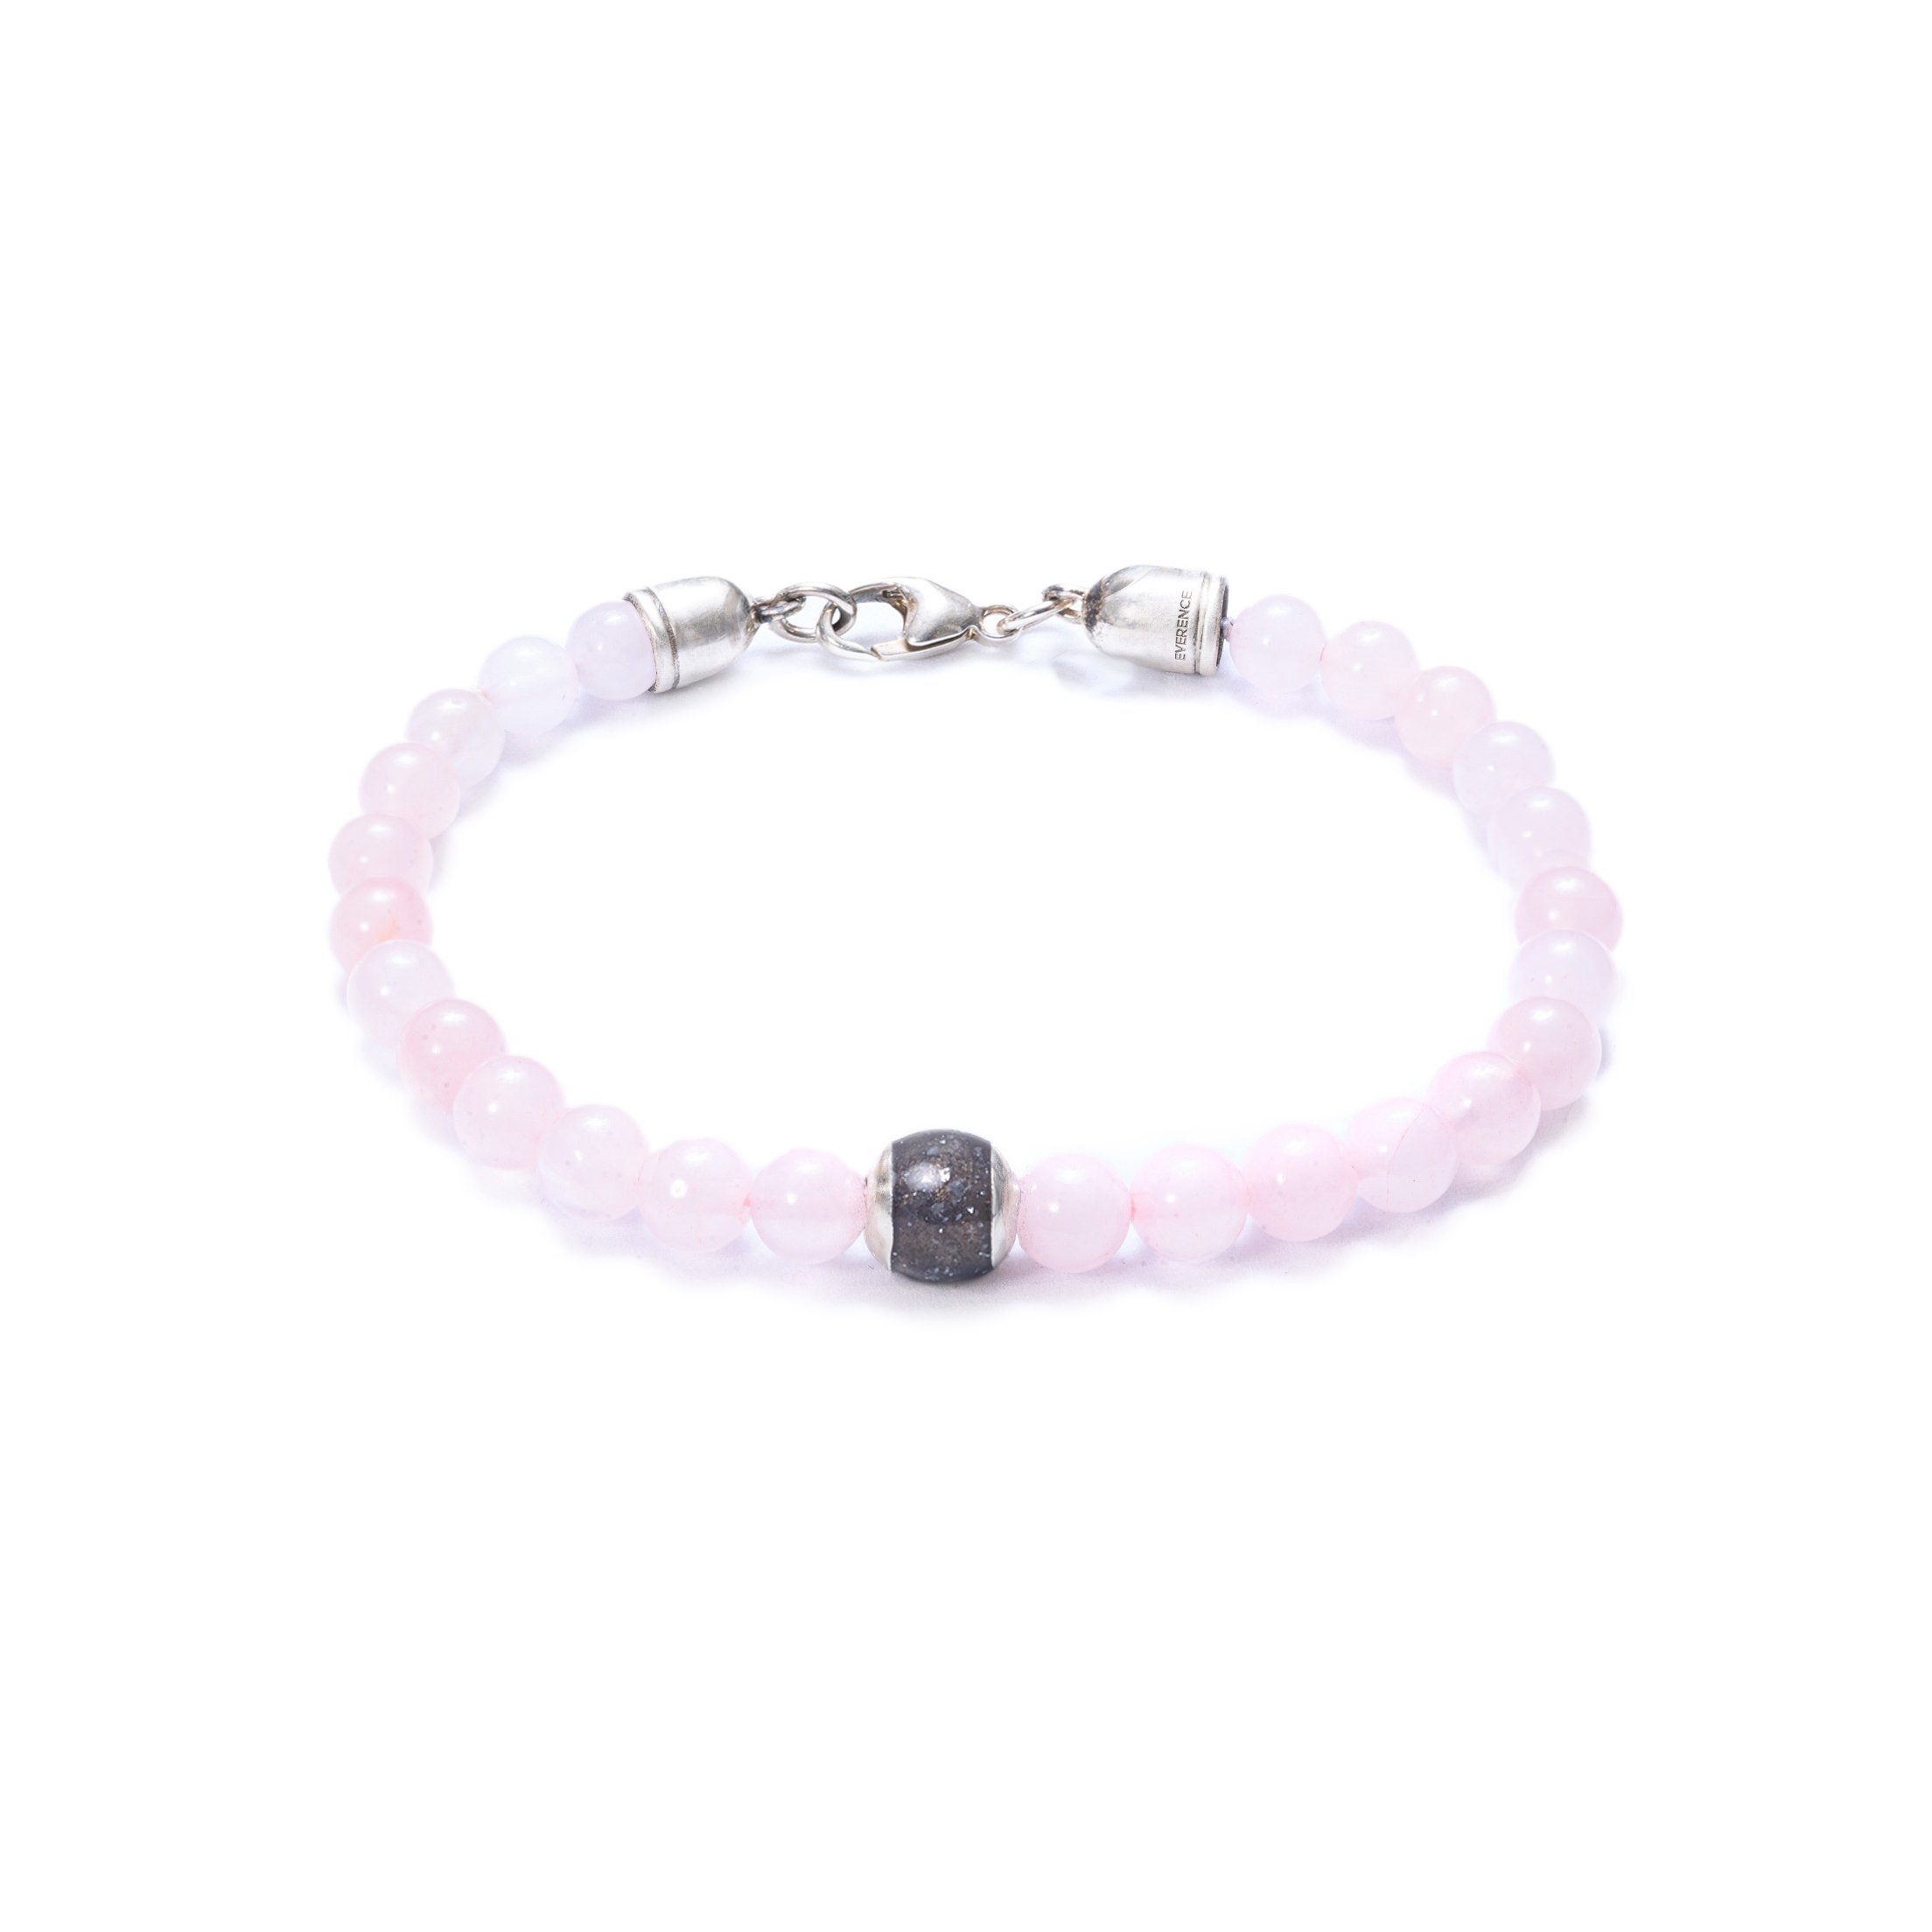 Rose Quartz, One Everence Bead Everence Grey Lobster Claw 7